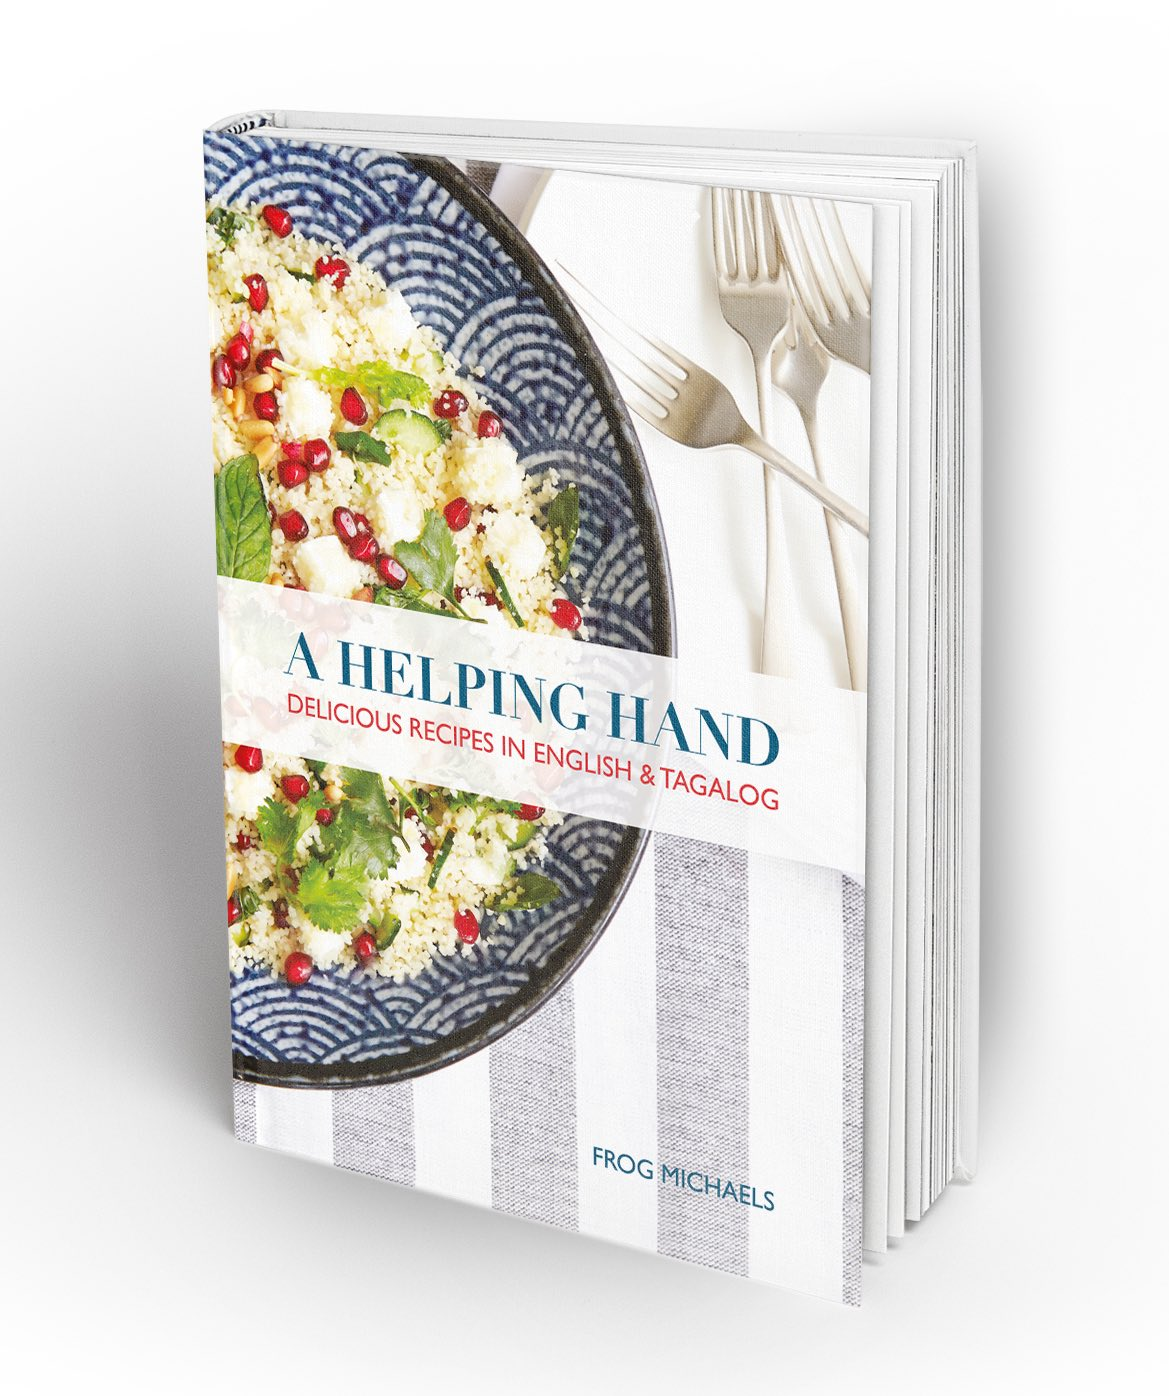 A Helping Hand: Delicious Recipes in English & Tagalog by Frog Michaels